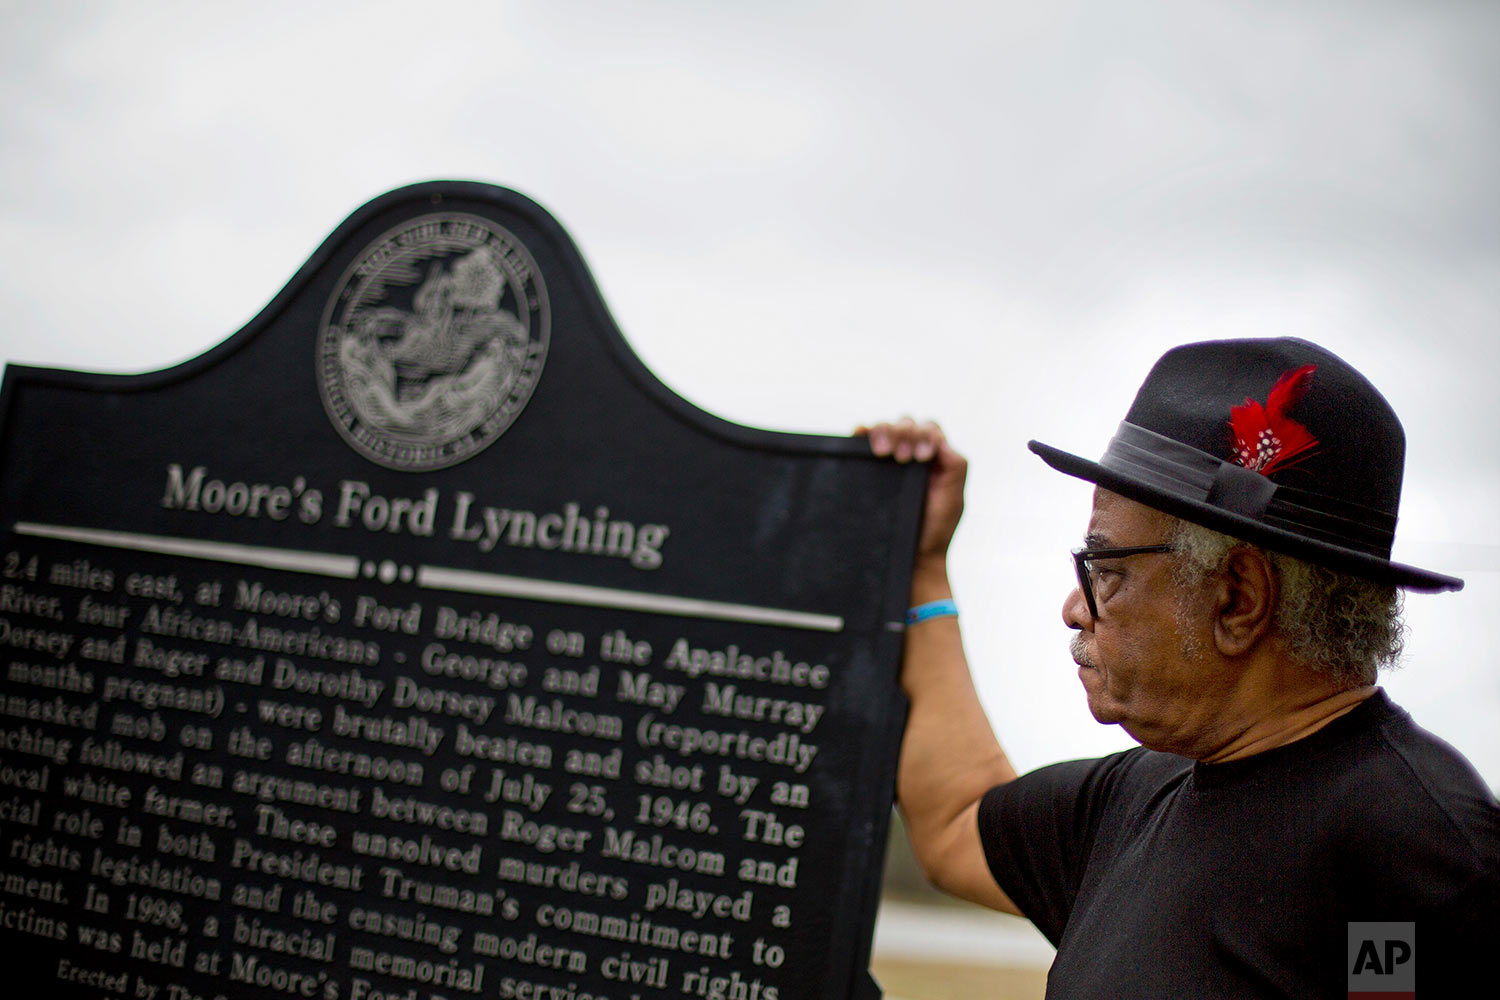 """In this Feb. 22, 2018 photo, Tyrone Brooks, a veteran civil rights activist, stands at a historical marker at the highway turnoff to the rural road where in 1946 two young black couples were stopped by a white mob and shot multiple times in Monroe, Ga. """"We want to perfect the record for history's sake, to make sure this case is never forgotten,"""" said Brooks, who began looking into the lynching in 1968 at the request of the Rev. Martin Luther King Jr. (AP Photo/David Goldman)"""